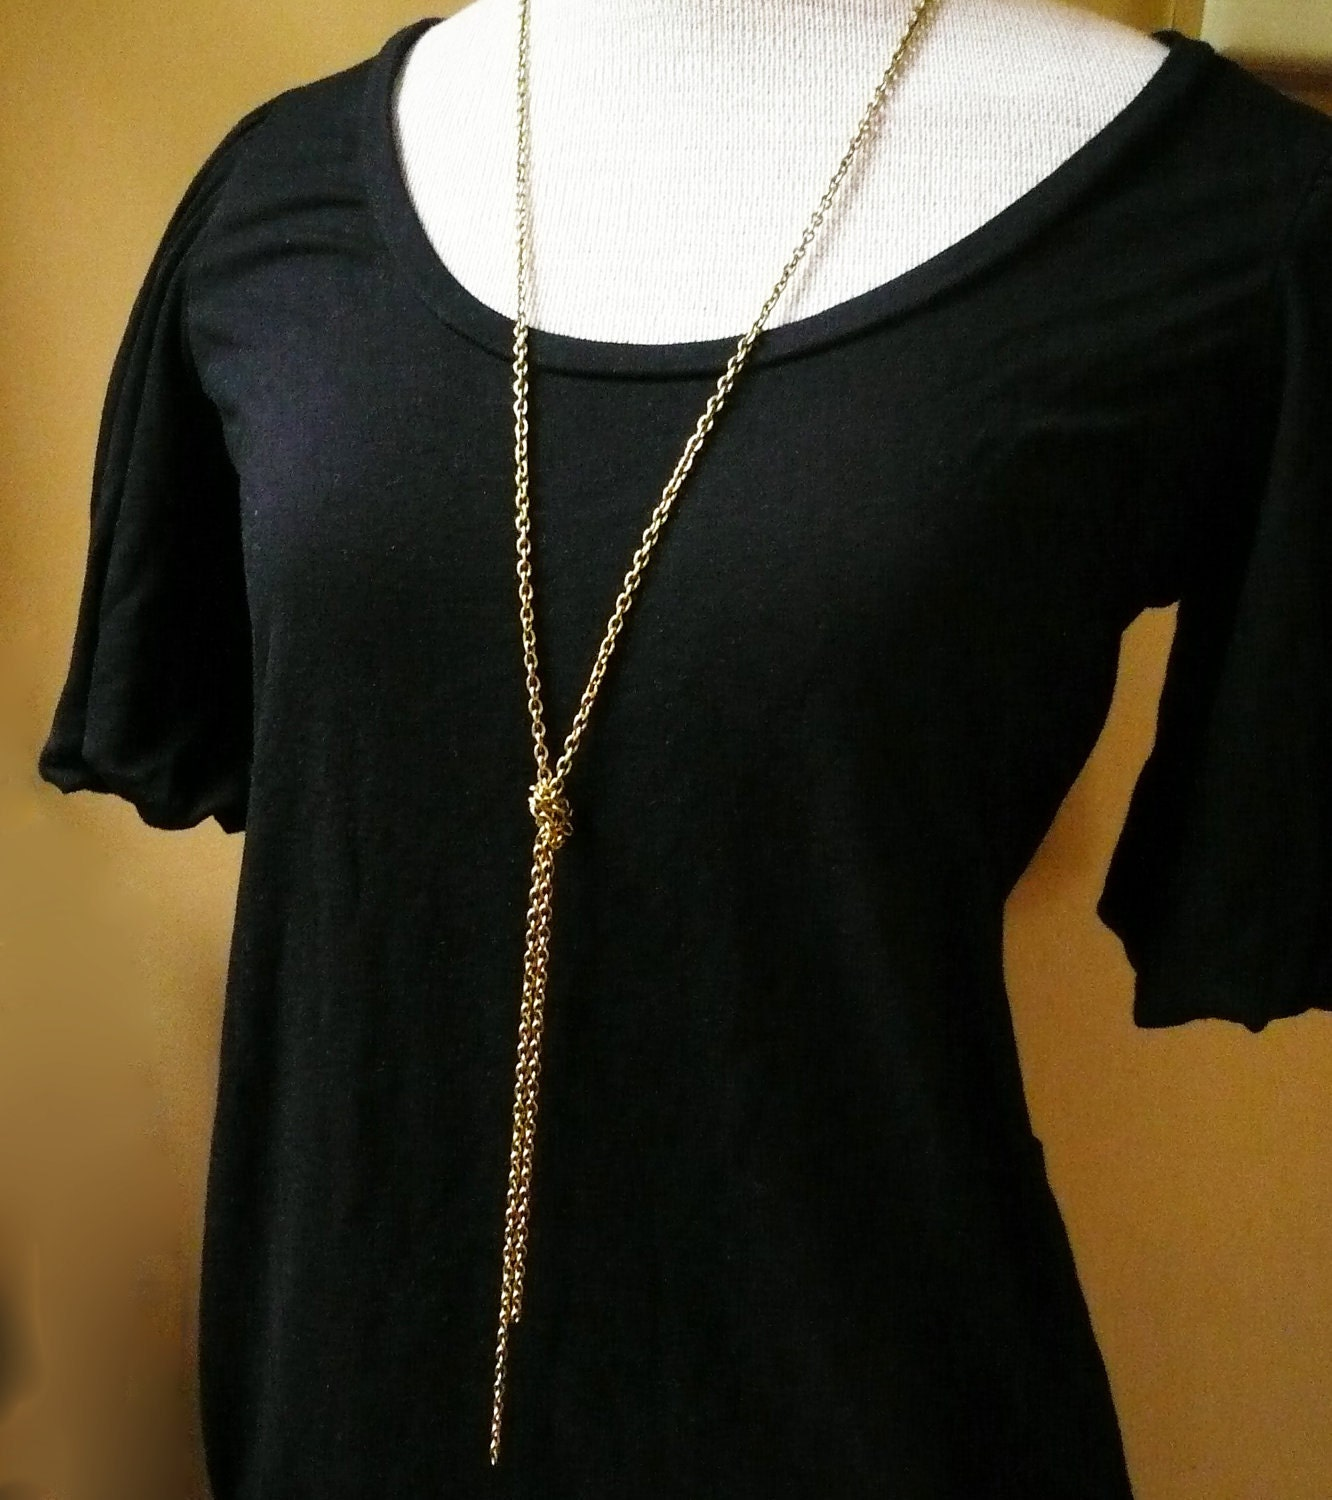 Long, 30 Inch Necklaces | Find Great Jewelry Deals Shopping at cybergamesl.gaes: Fine, Fashion, Men's, Women's.